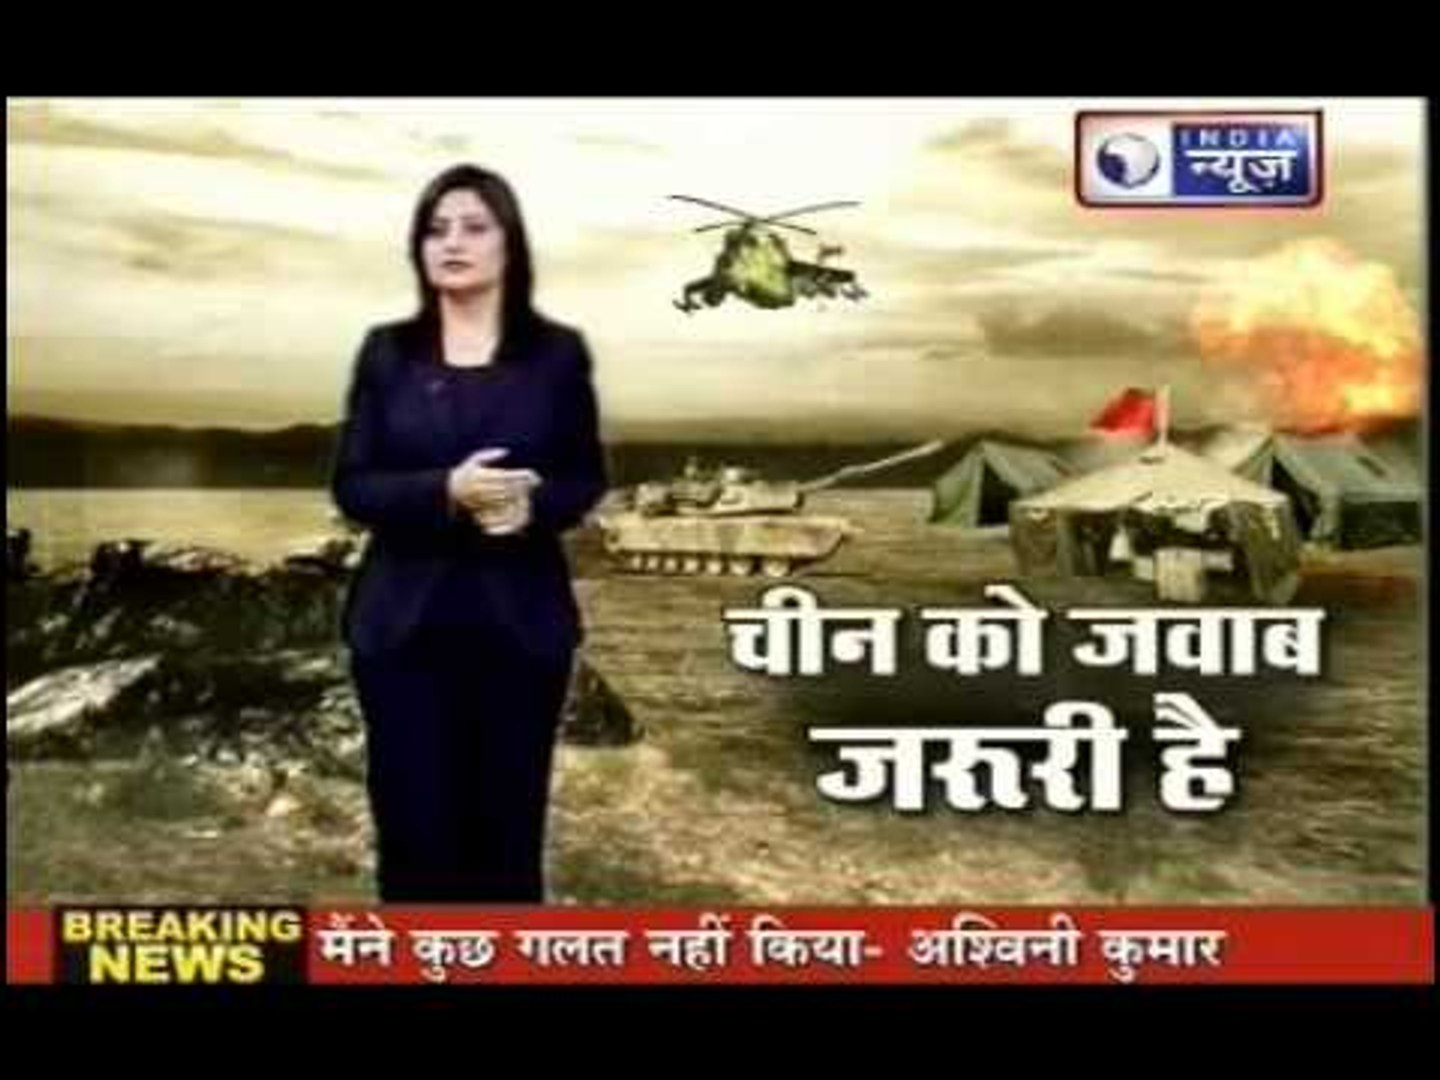 India News: Dragon in India